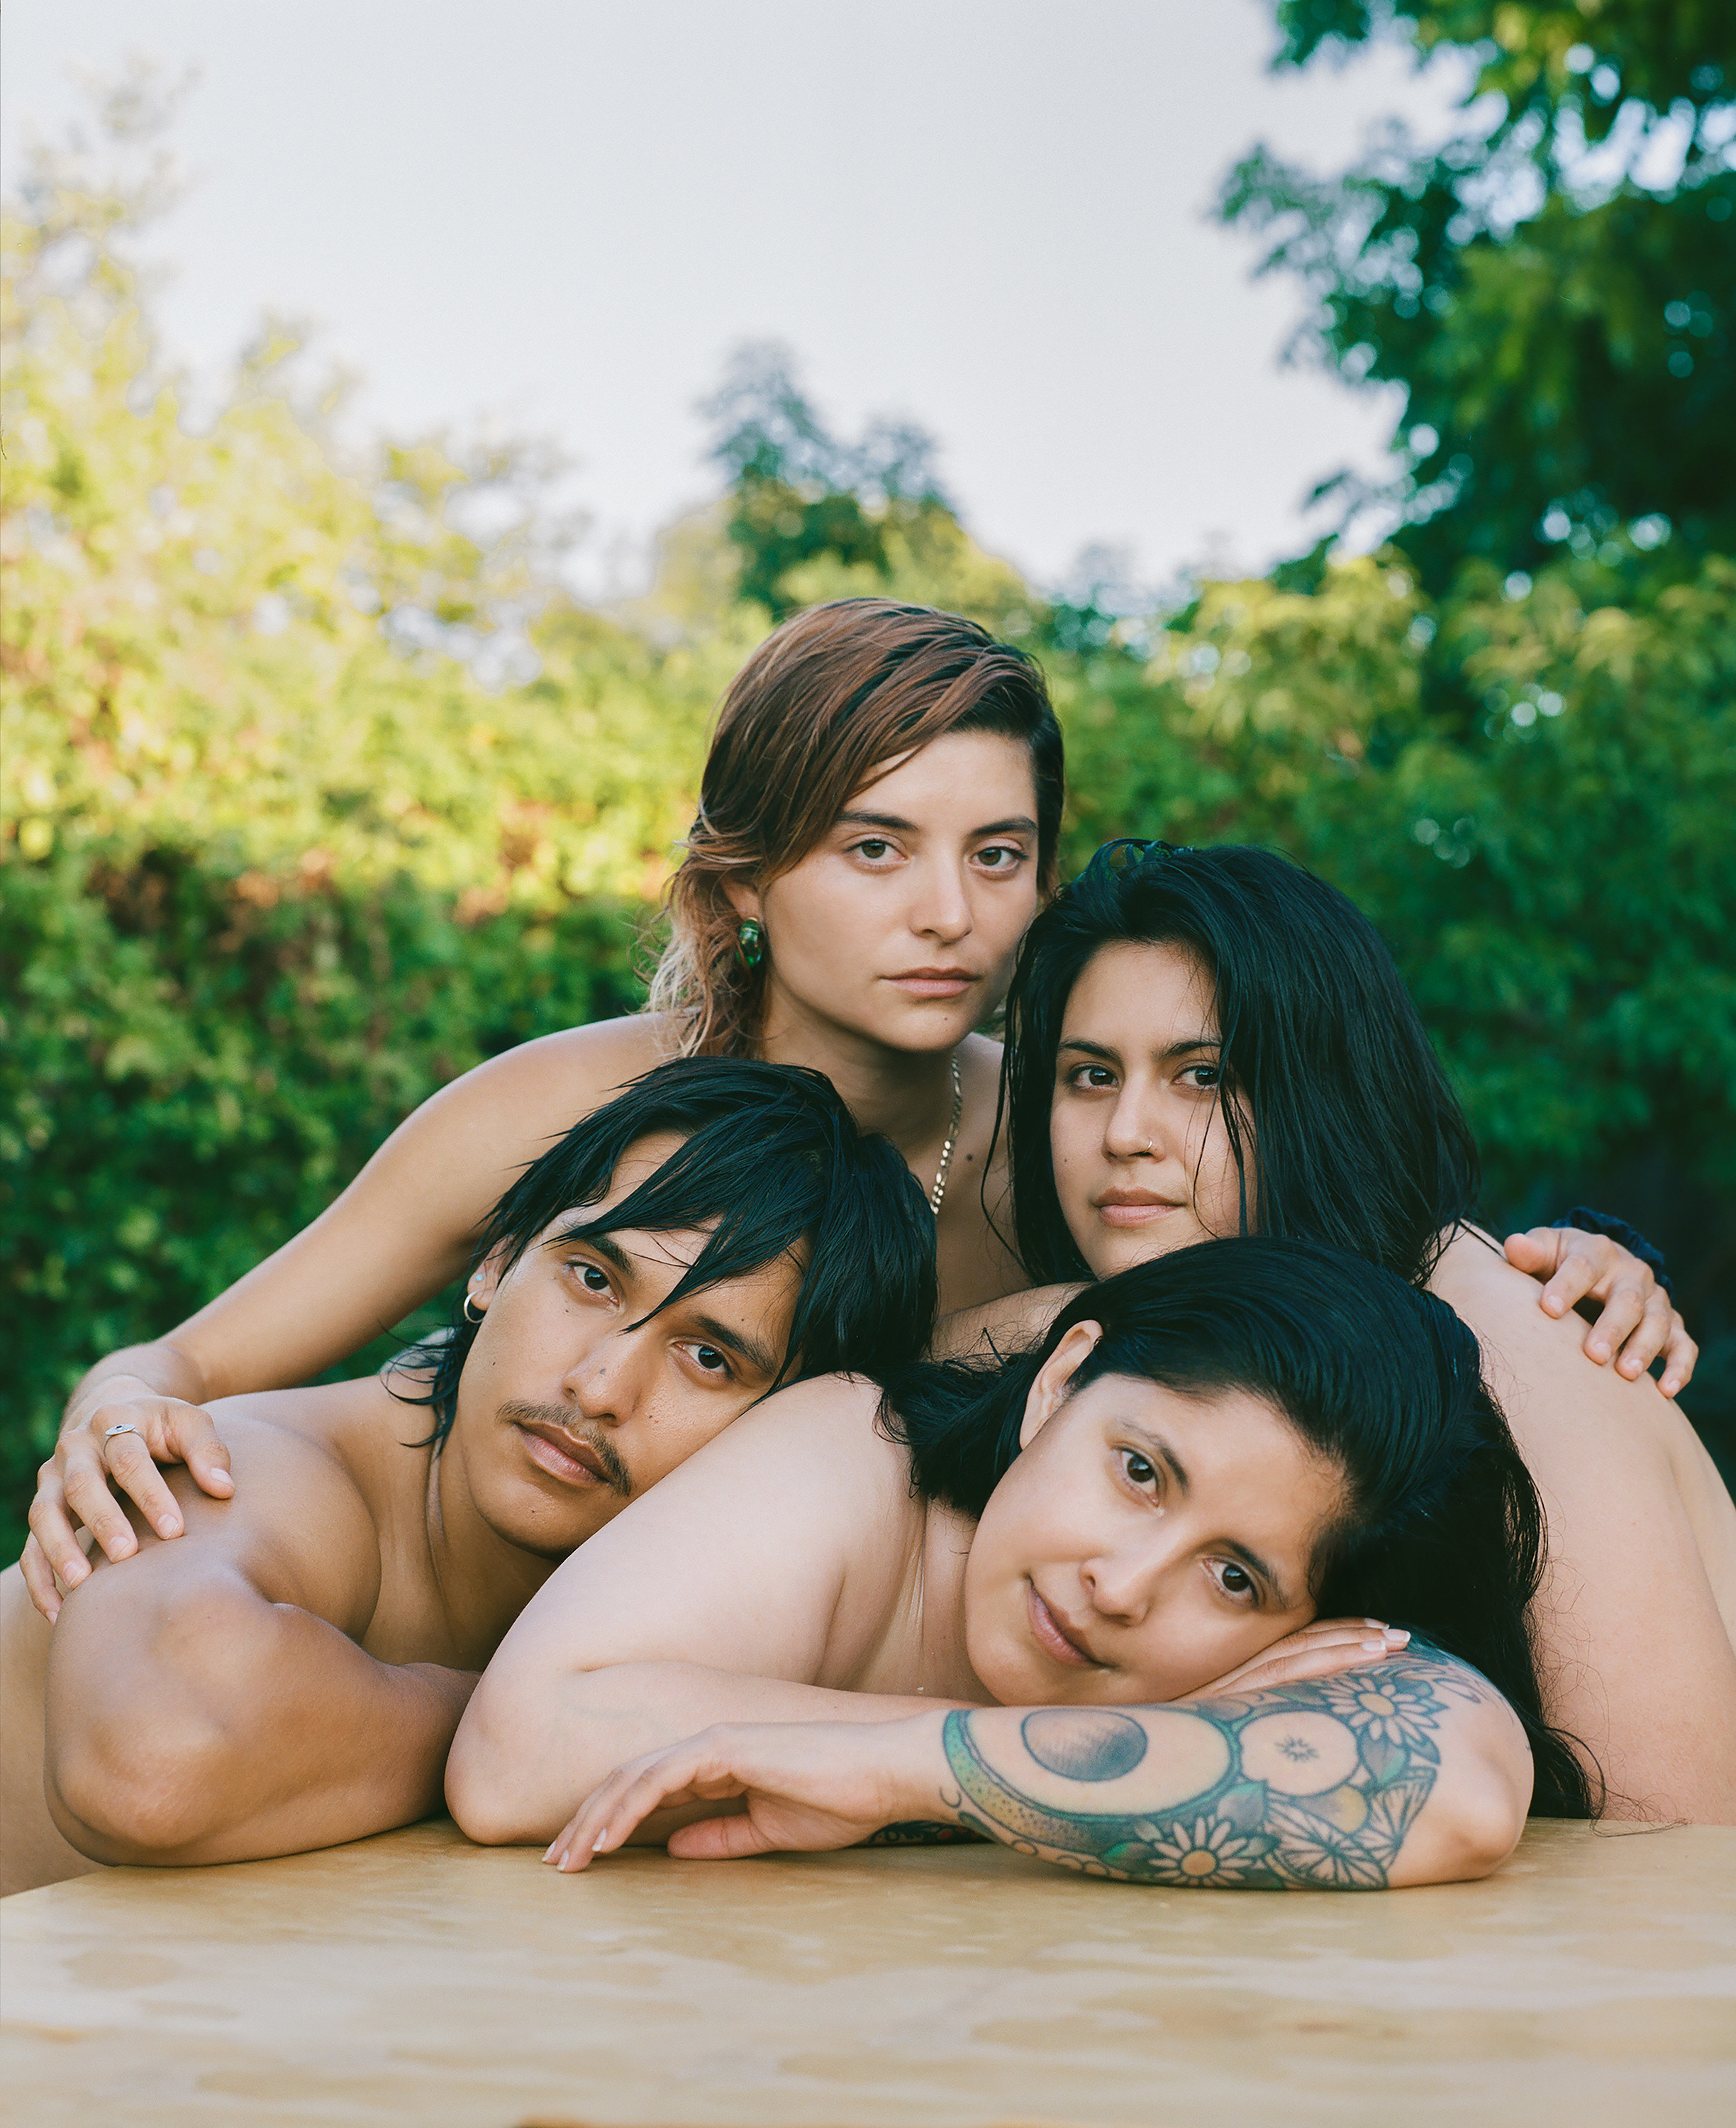 Four people, apparently naked, leaning on one another with their torsos on a plywood table